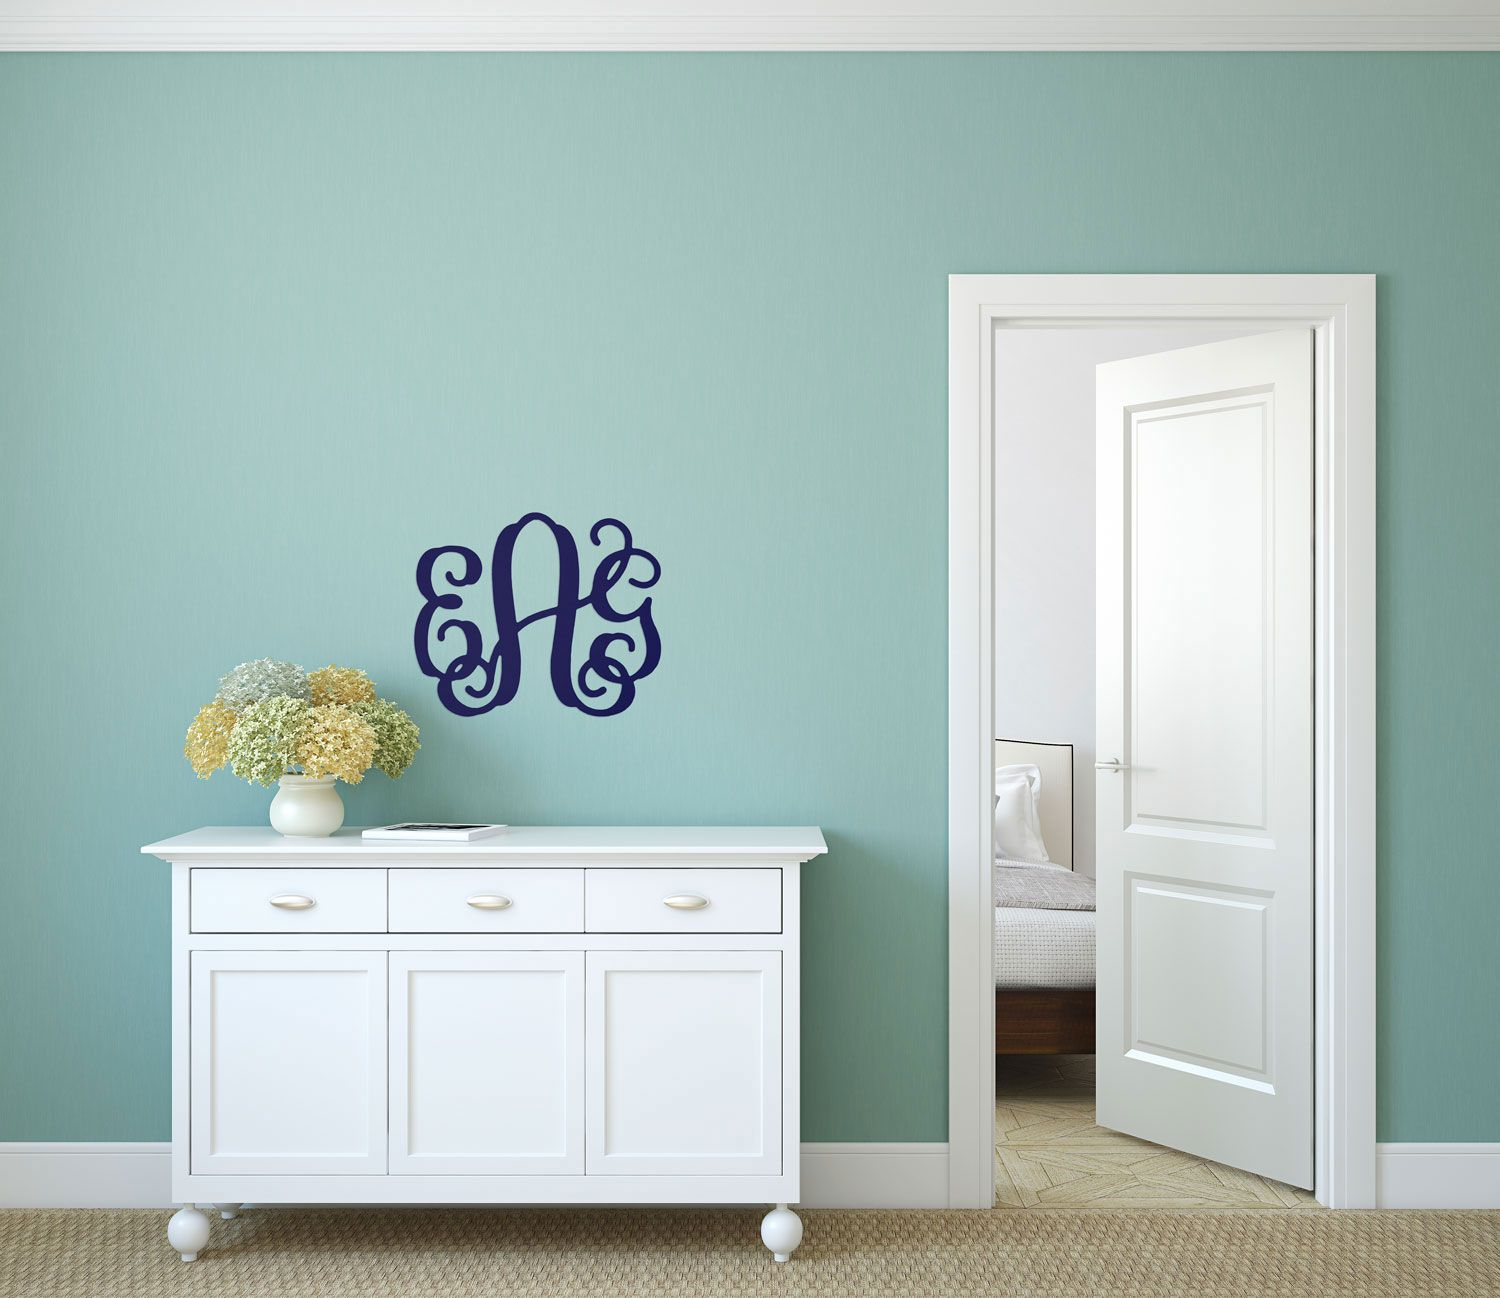 Personalized Small Three Initials Wood Monogram ~ 14 in. high